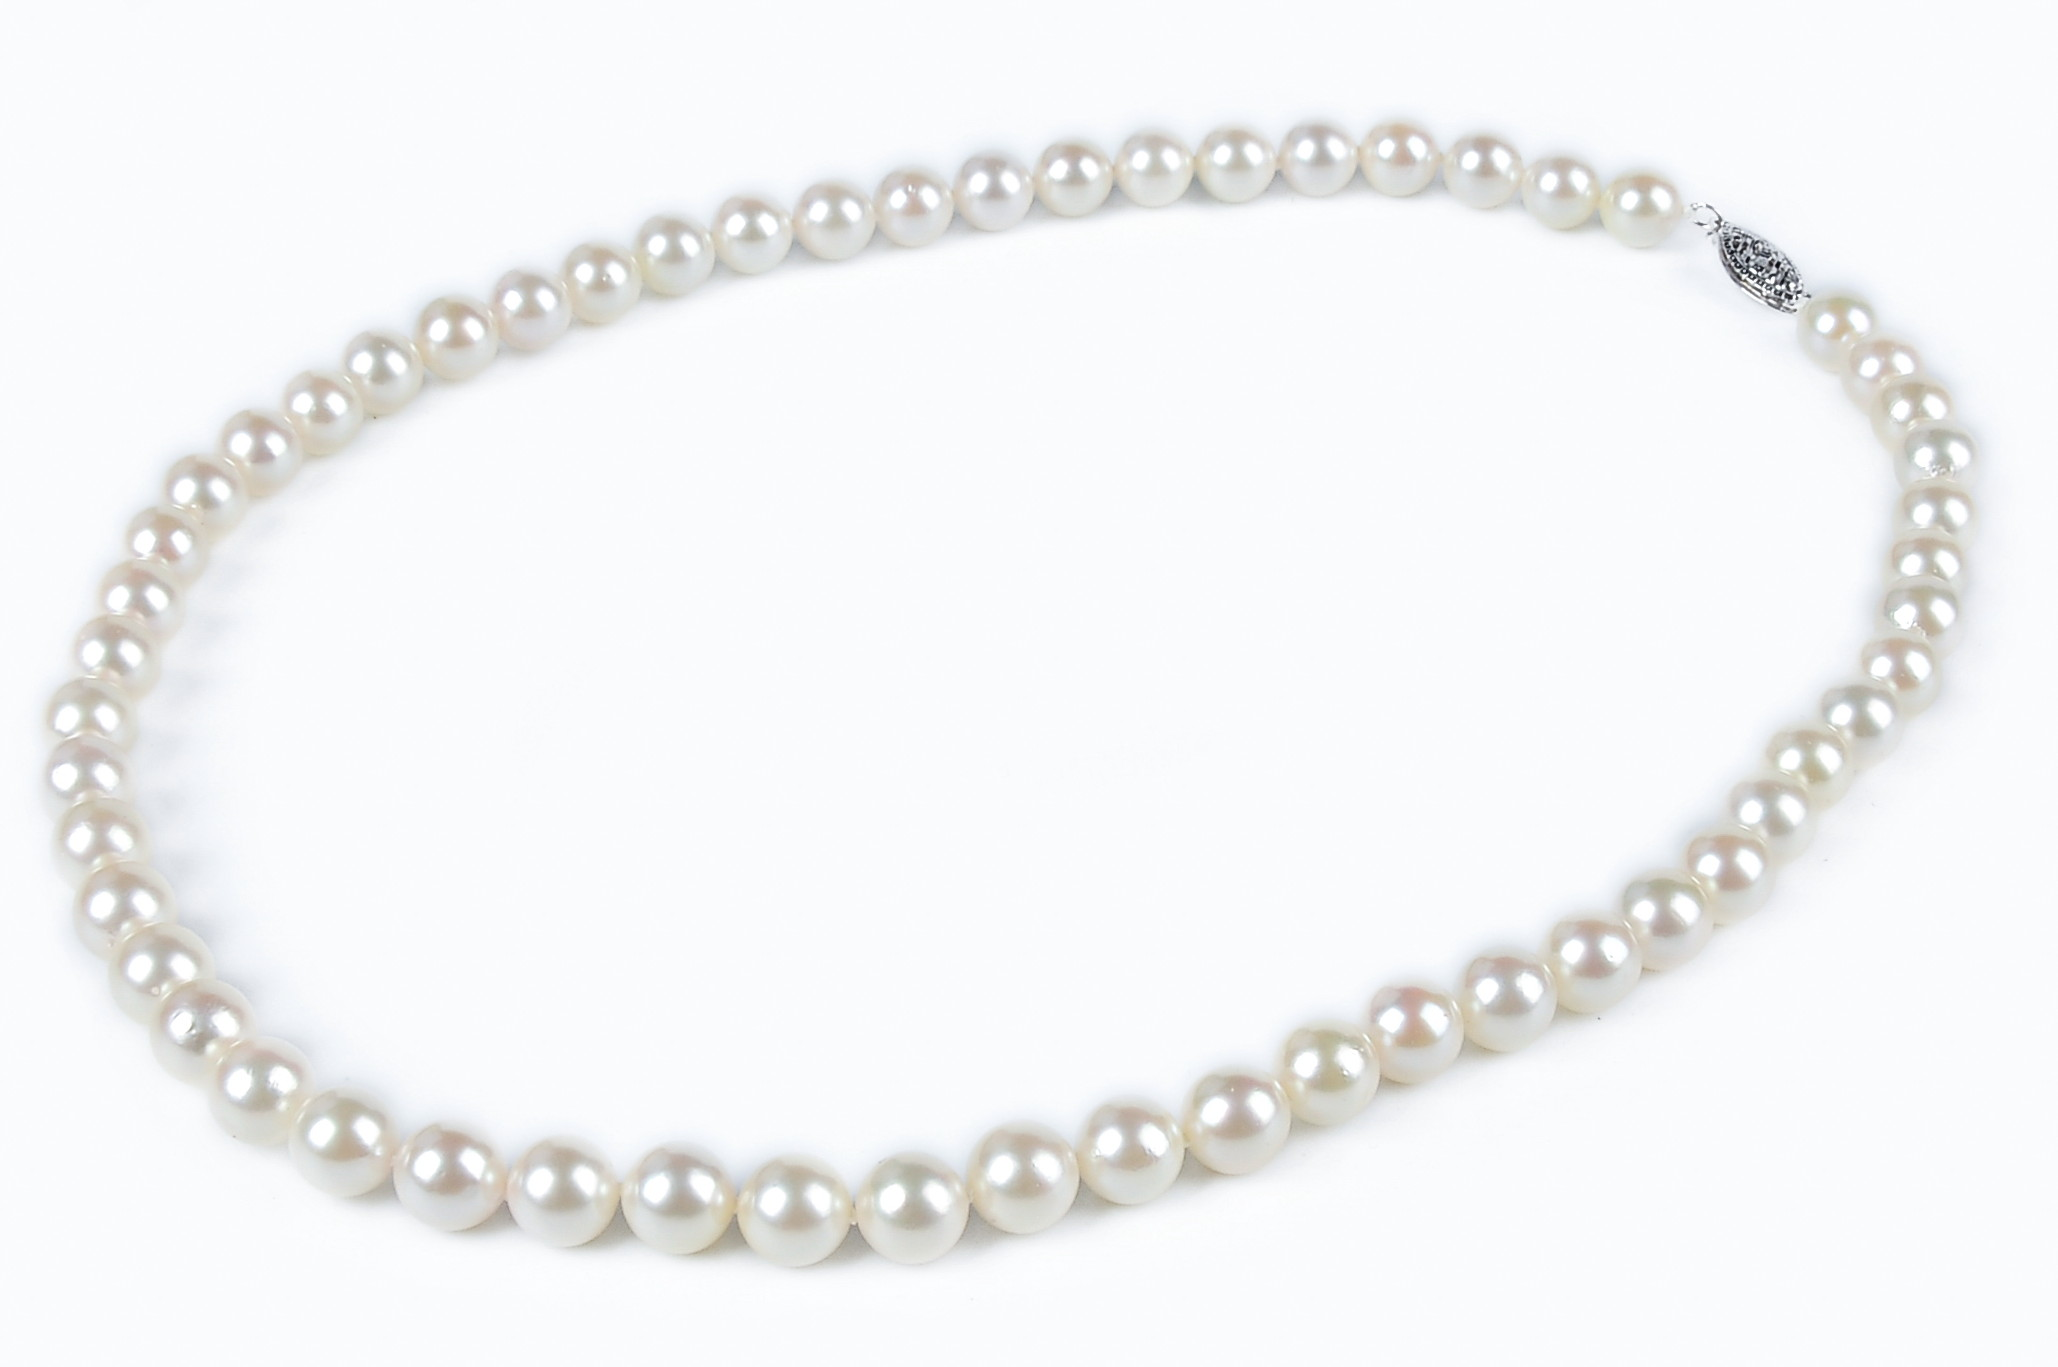 7.5 mm AAA Quality White Akoya Pearl Necklace -nk7